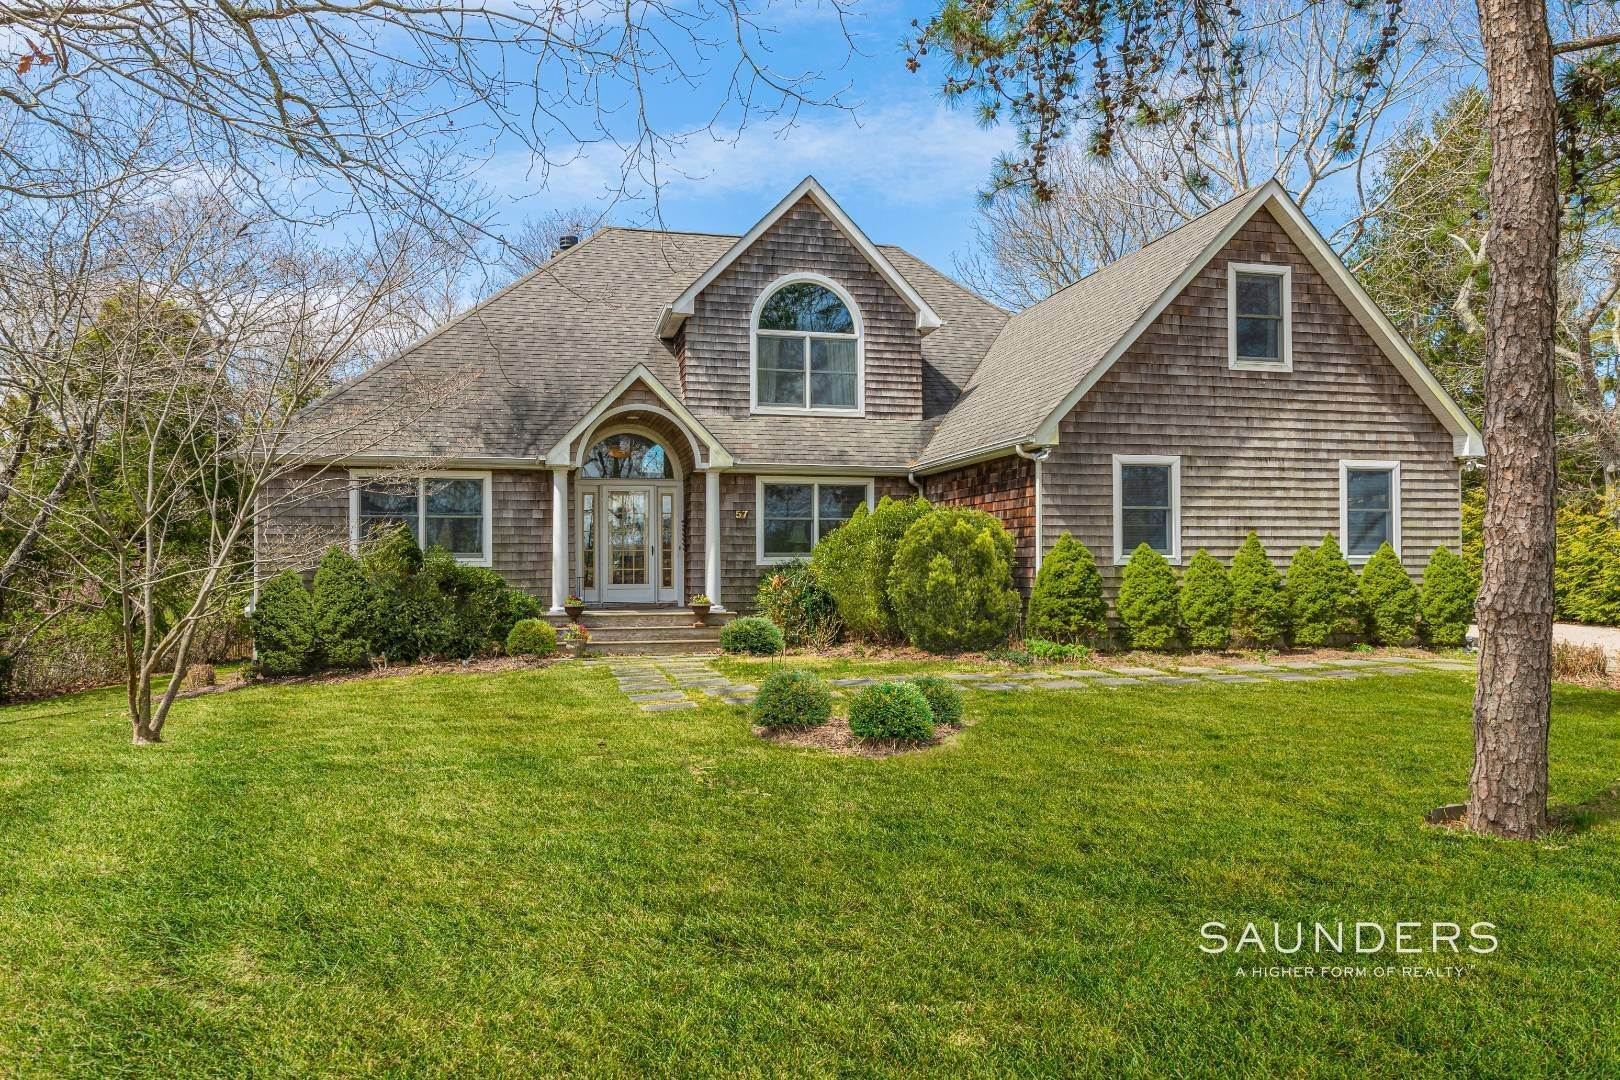 Single Family Homes for Sale at Southampton - Cold Spring Fairways 57 Spring Pond Lane, Southampton, Southampton Town, NY 11968